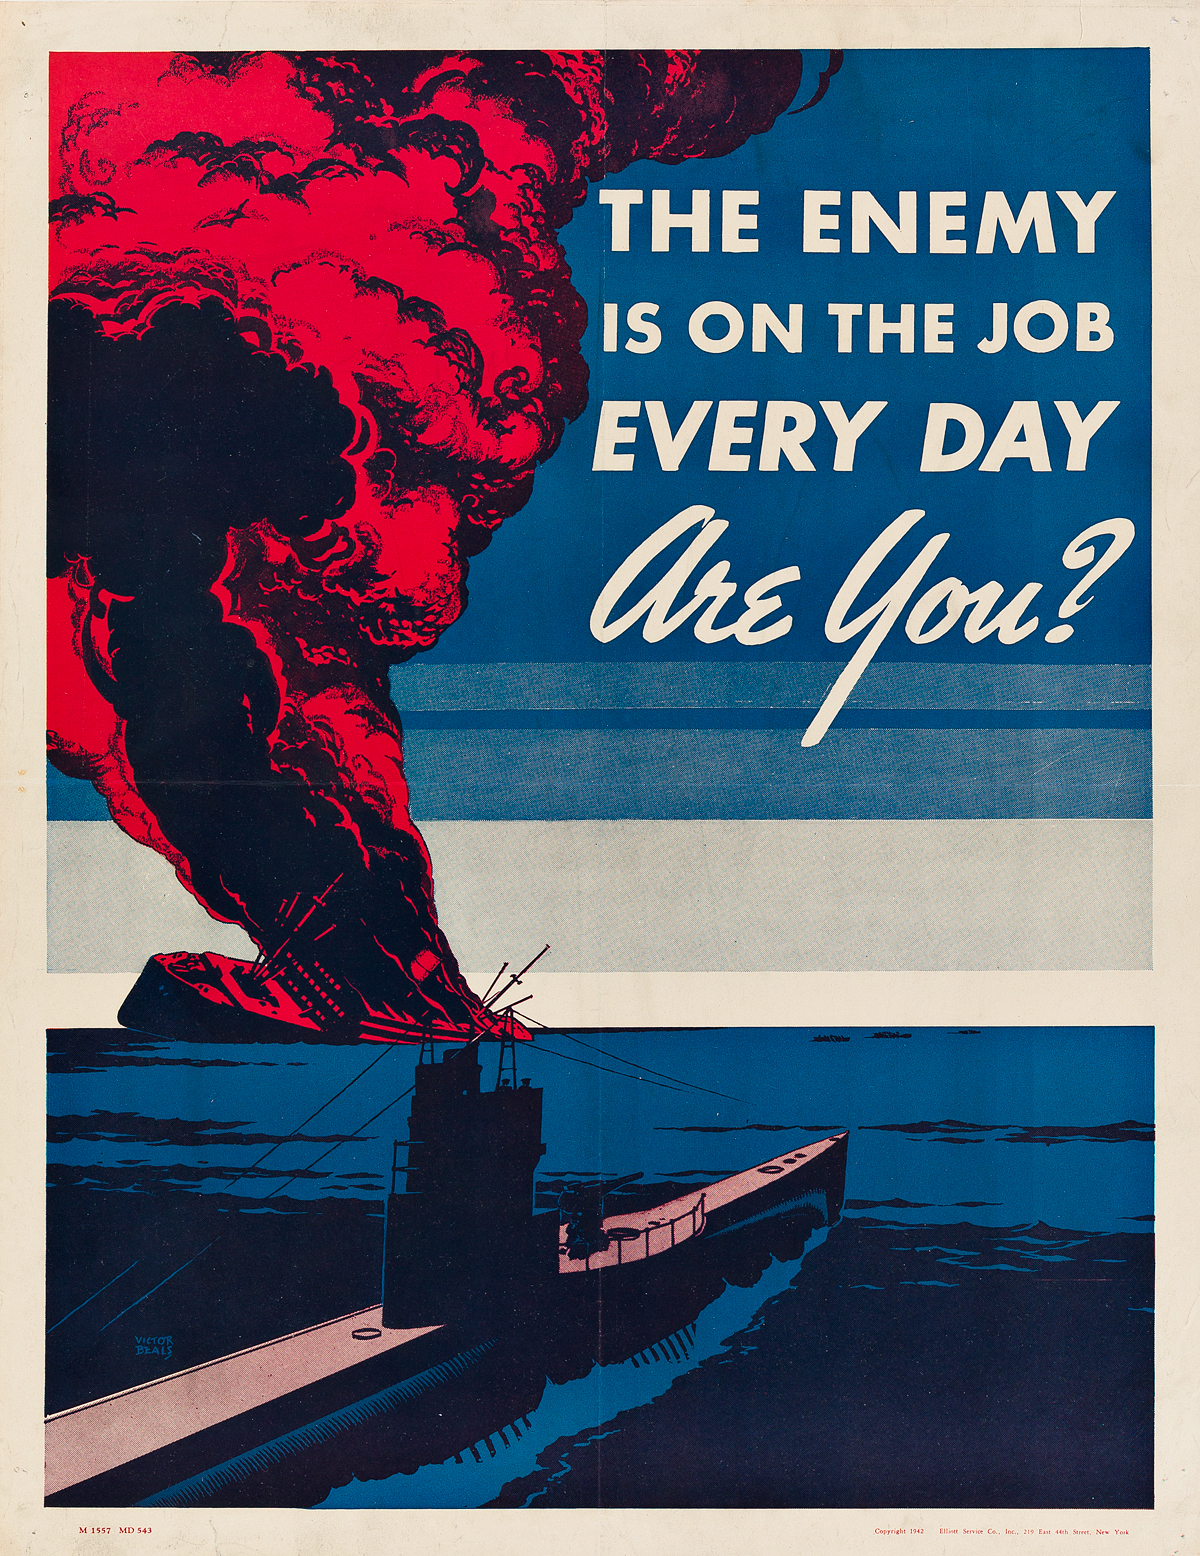 VARIOUS-ARTISTS-[WORLD-WAR-II--US--CANADA]-Group-of-16-small-format-posters-Circa-1940s-Sizes-vary